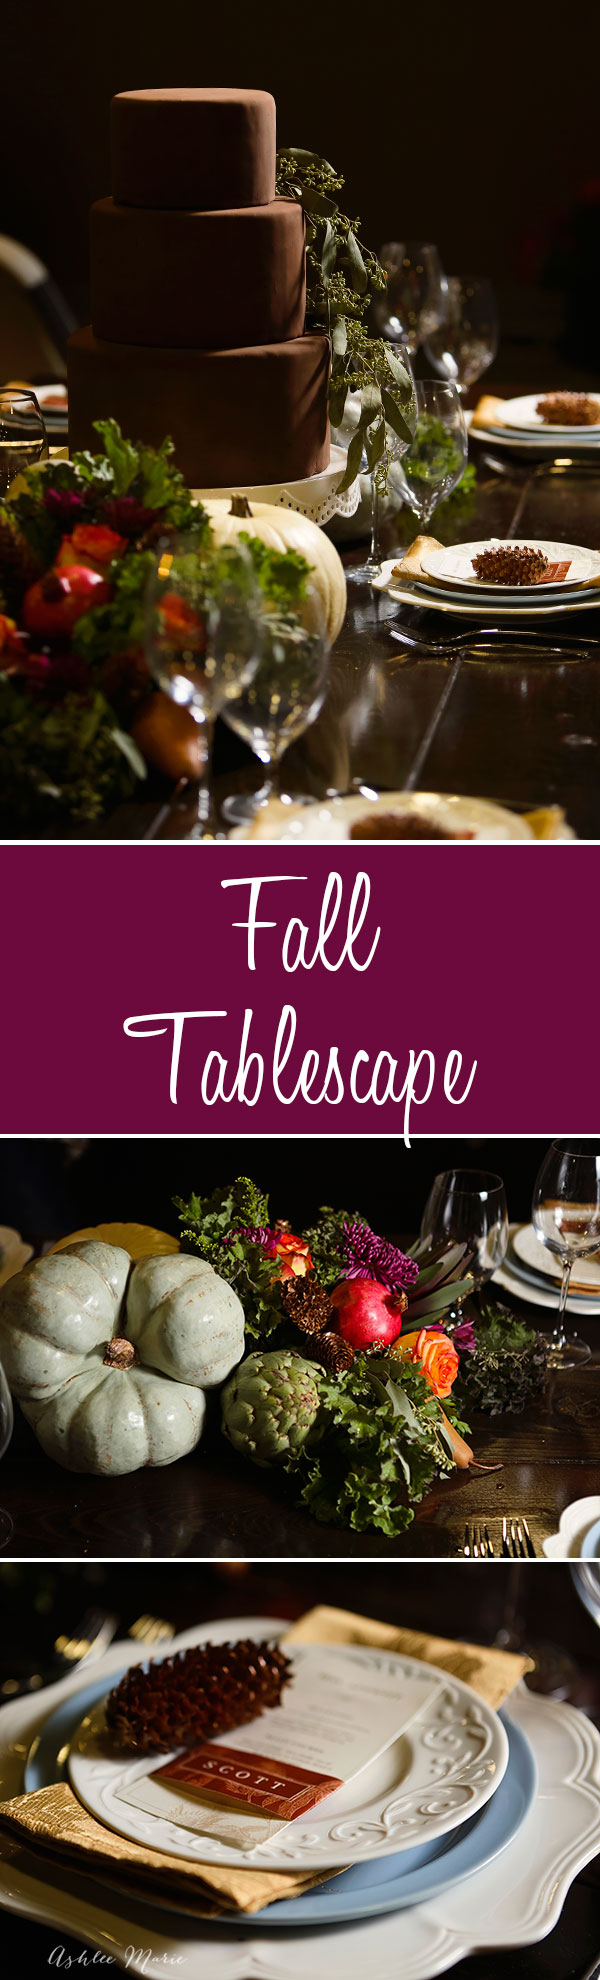 creating your own fall tablescape with pumpkins and other edible veggies to create a beautiful centerpiece